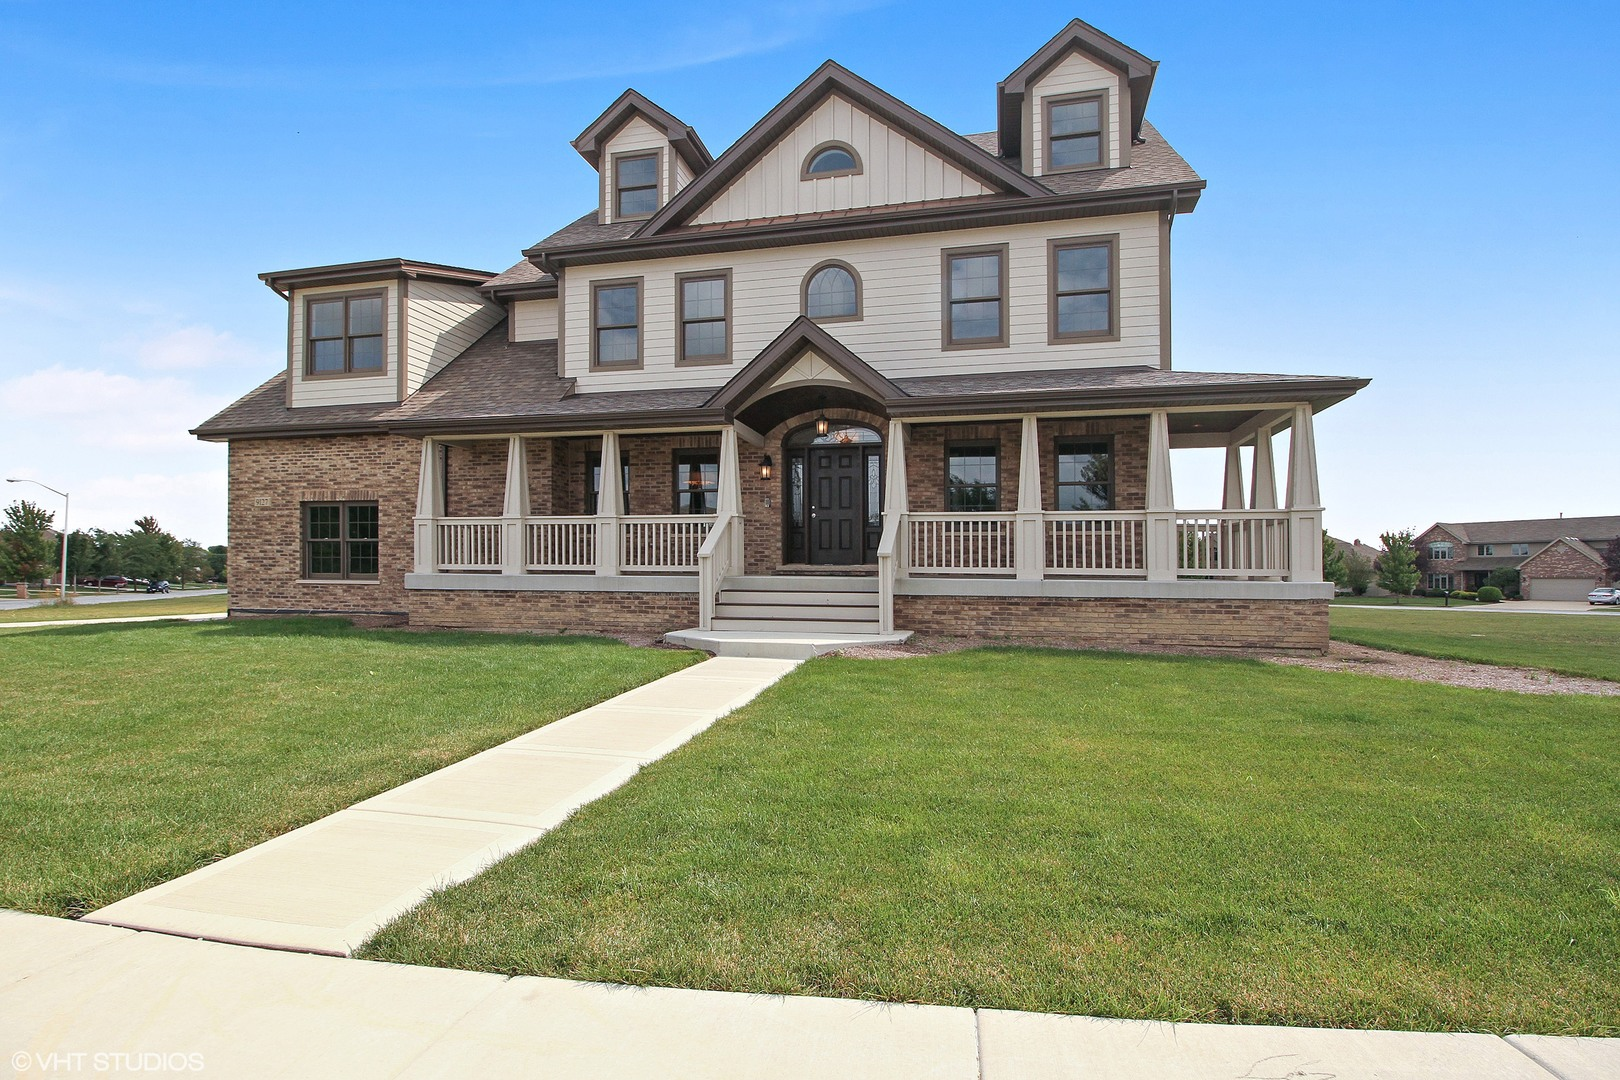 Tinley Park Illinois Homes For Sale